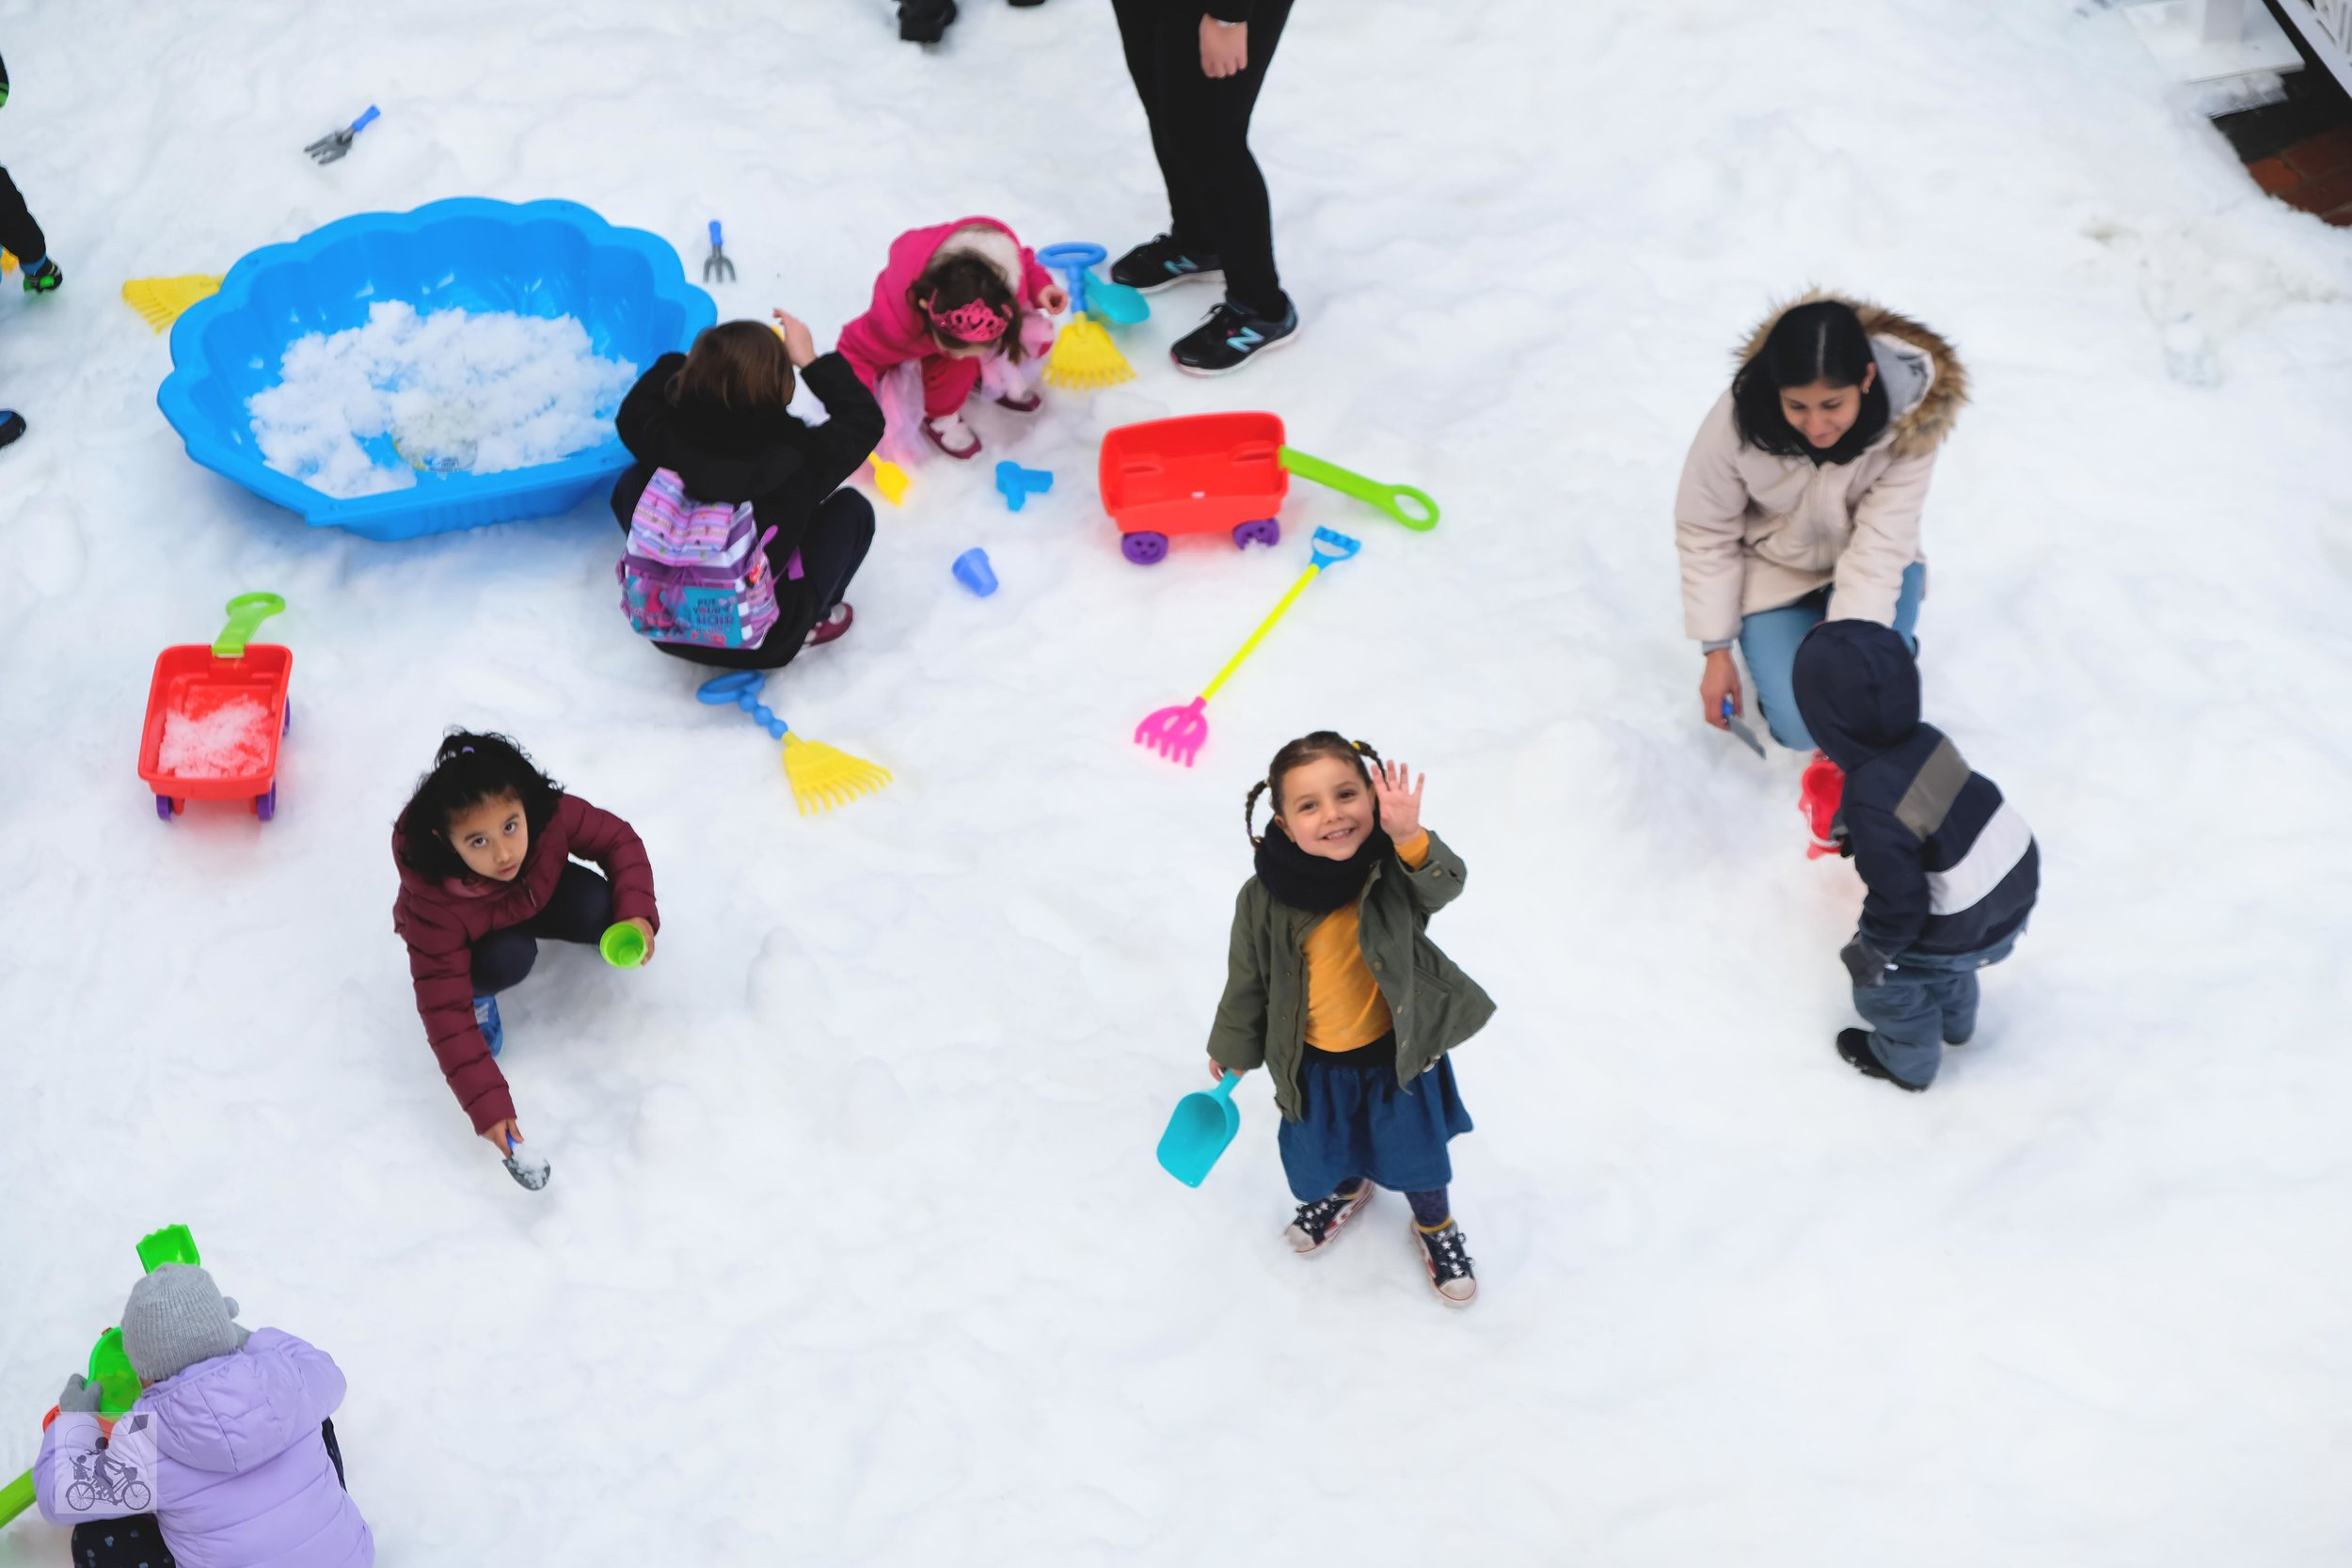 winter experience @ district docklands